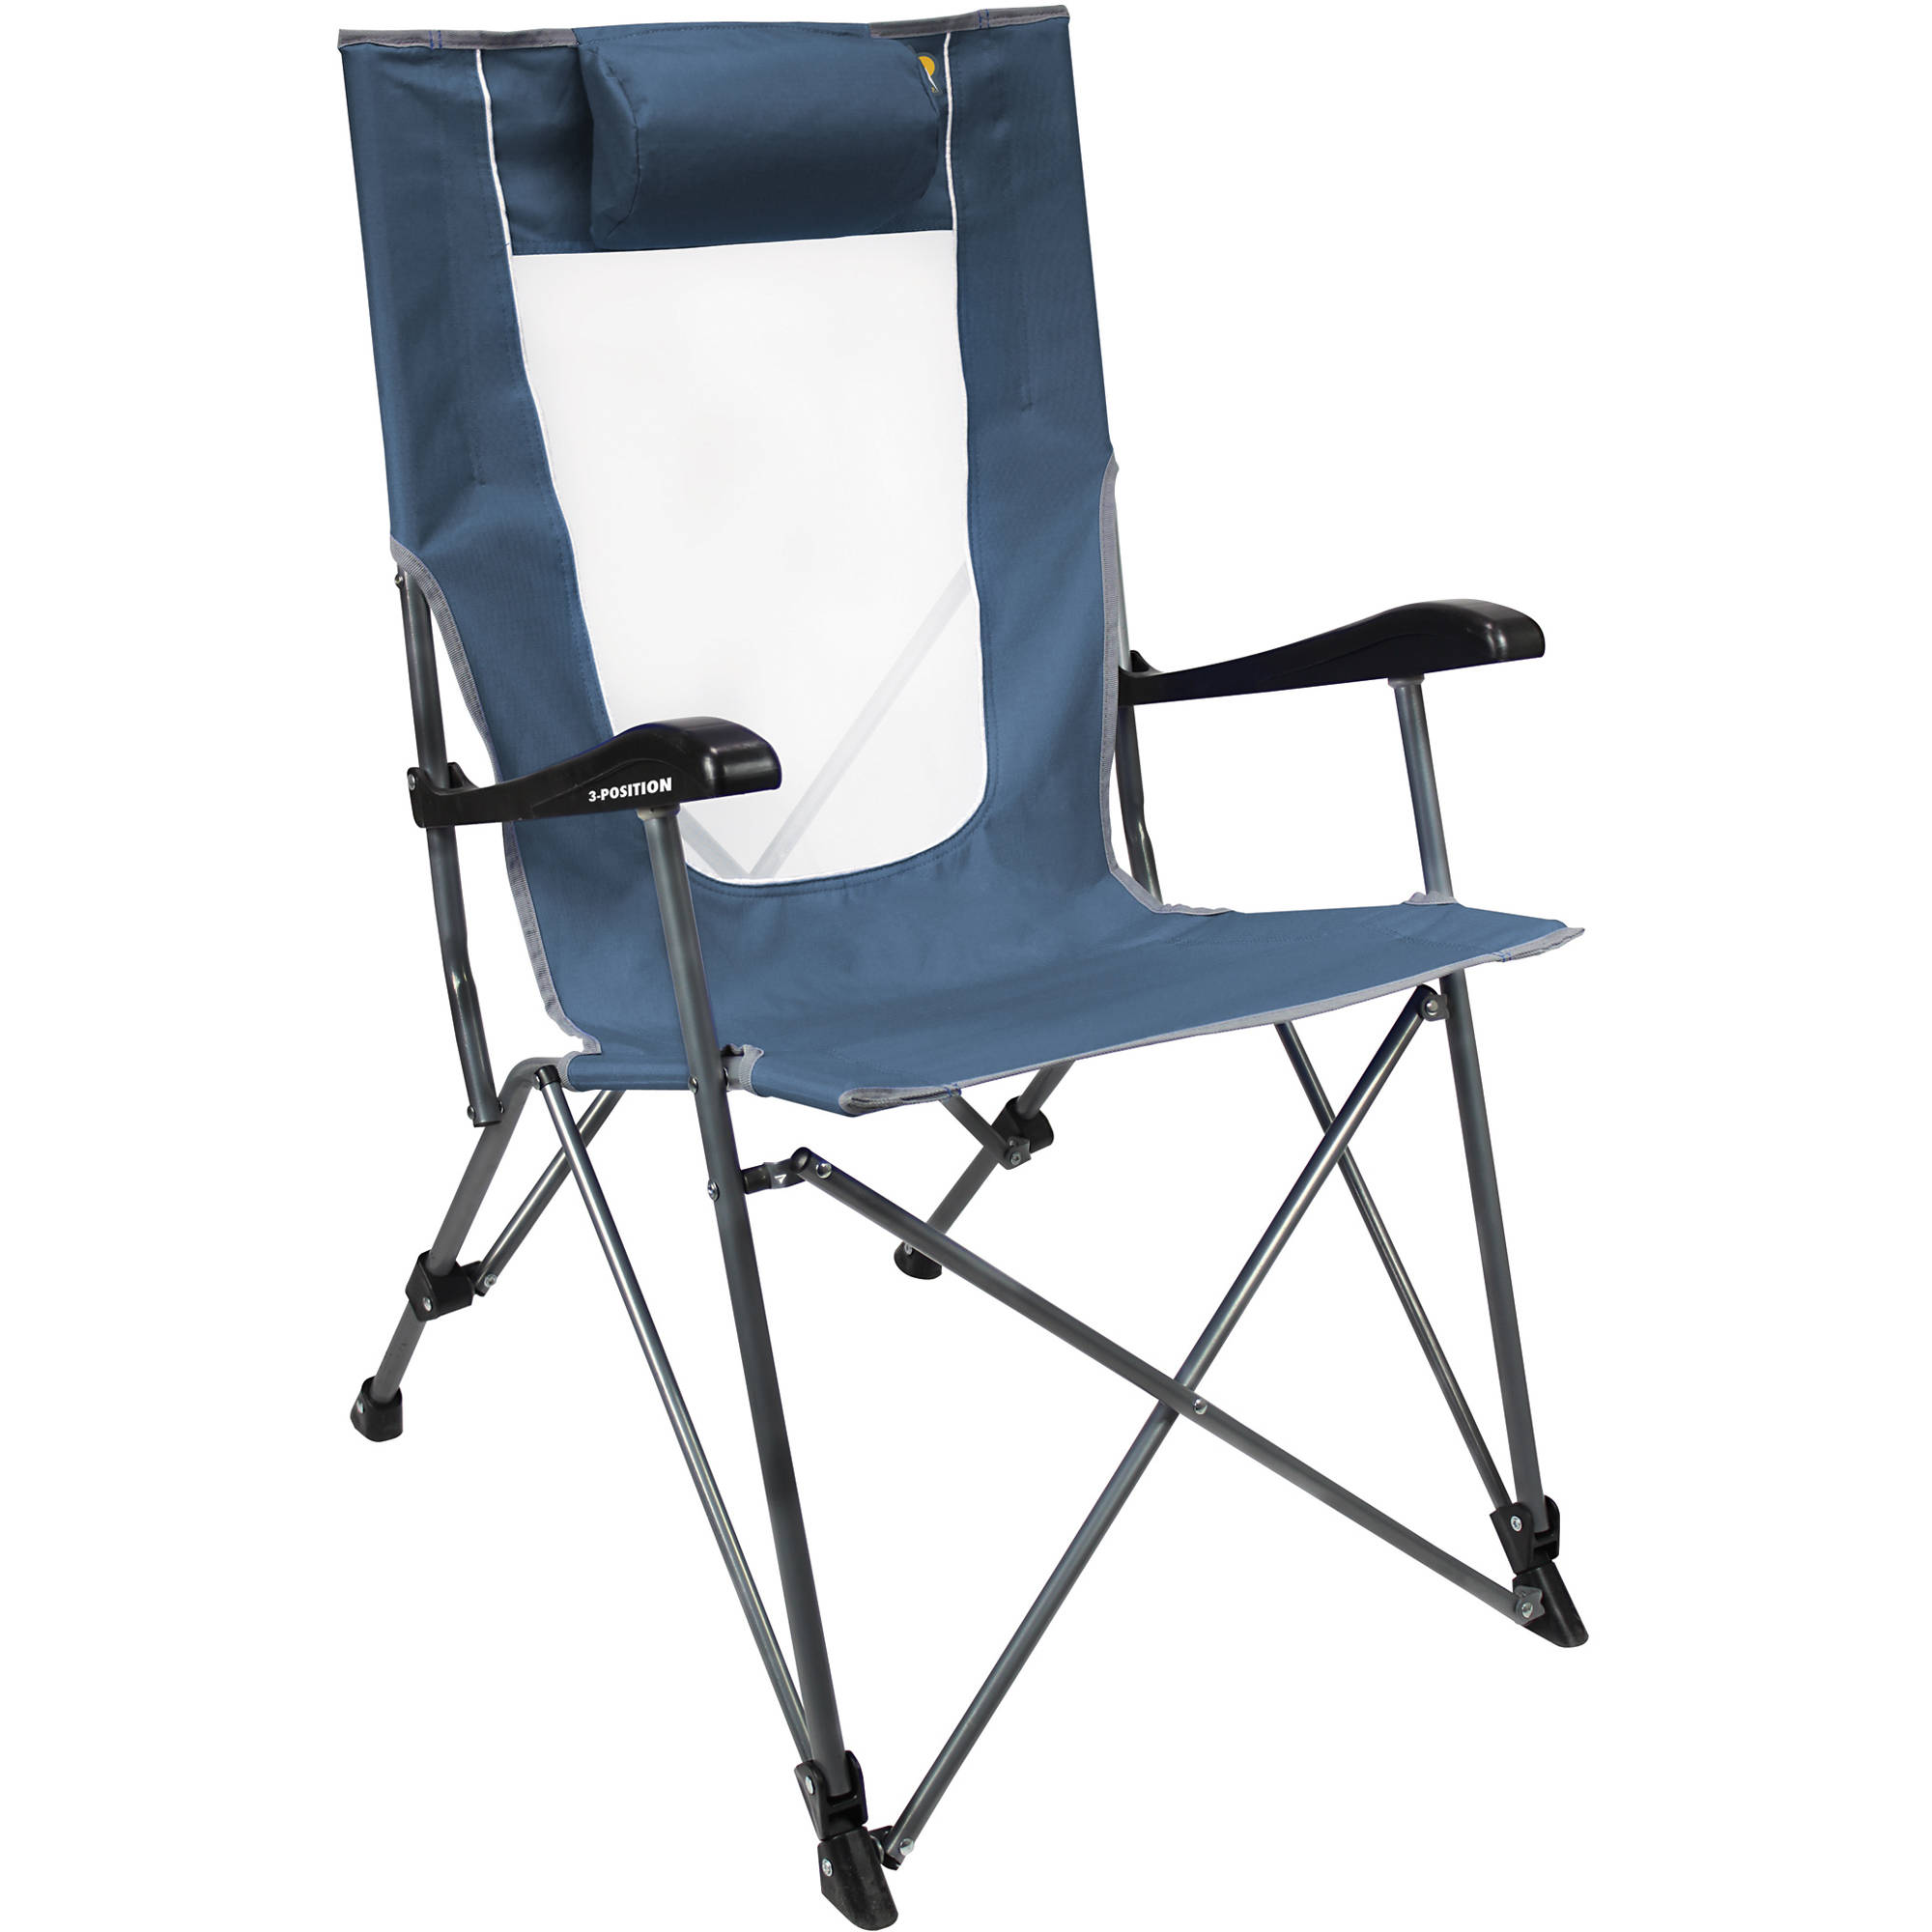 Most fortable Folding Chair